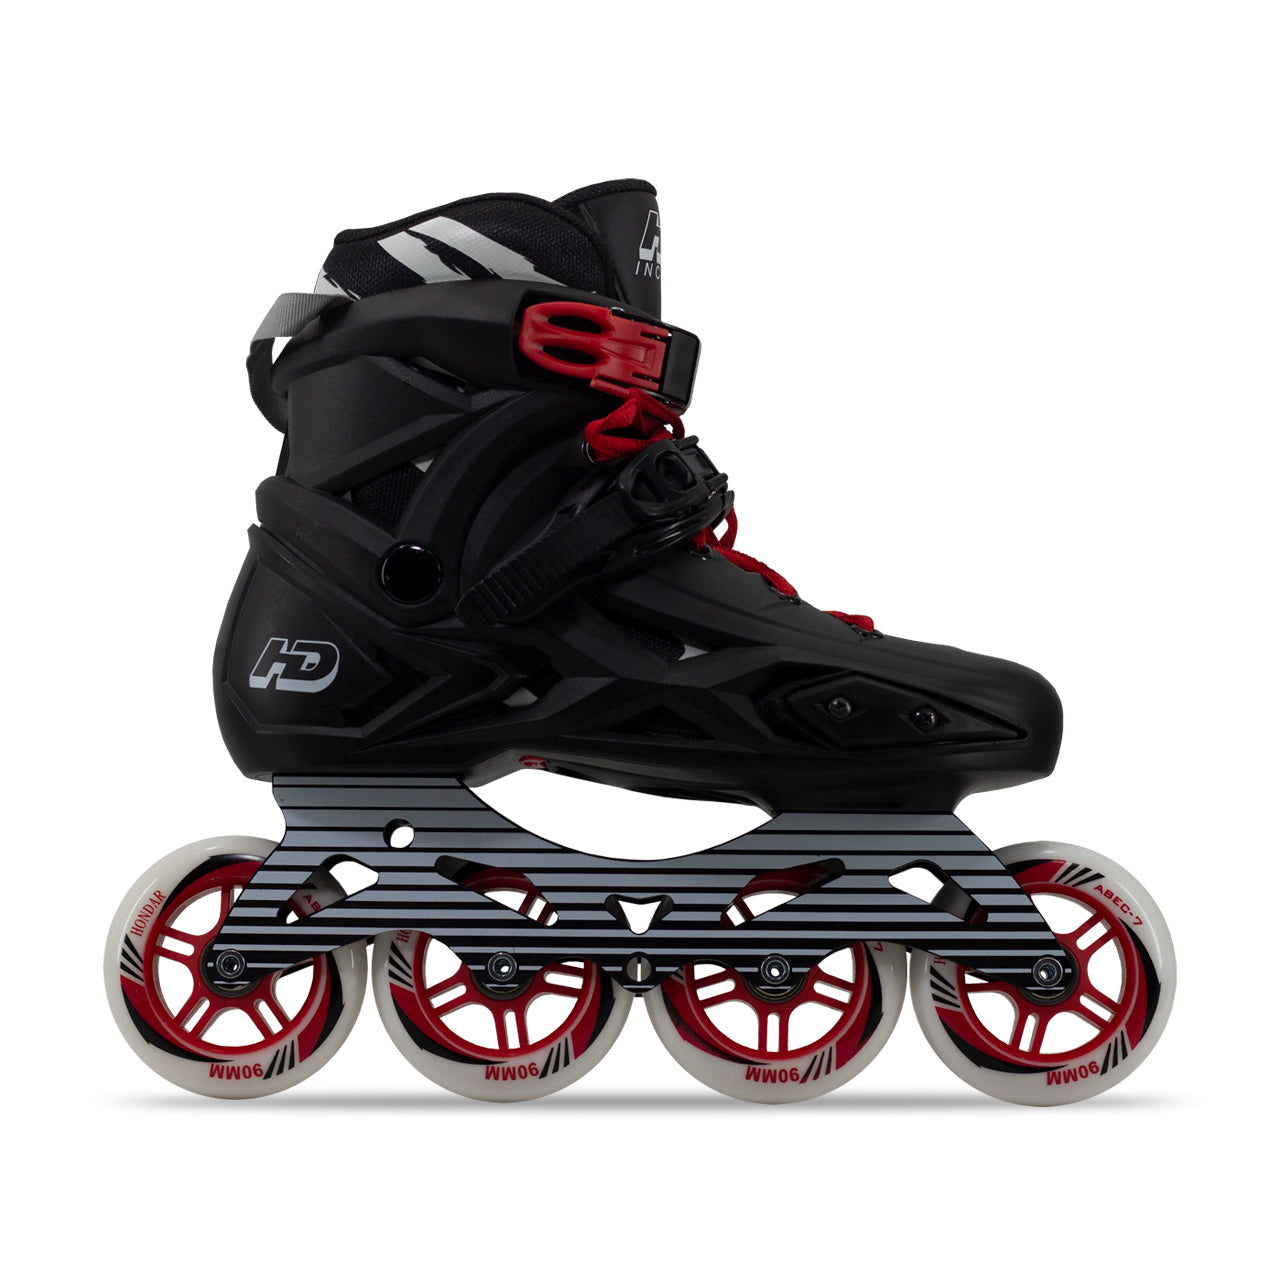 Patins HD Inline X 2021 Preto Red 90mm com base hibrida 110mm Lançamento